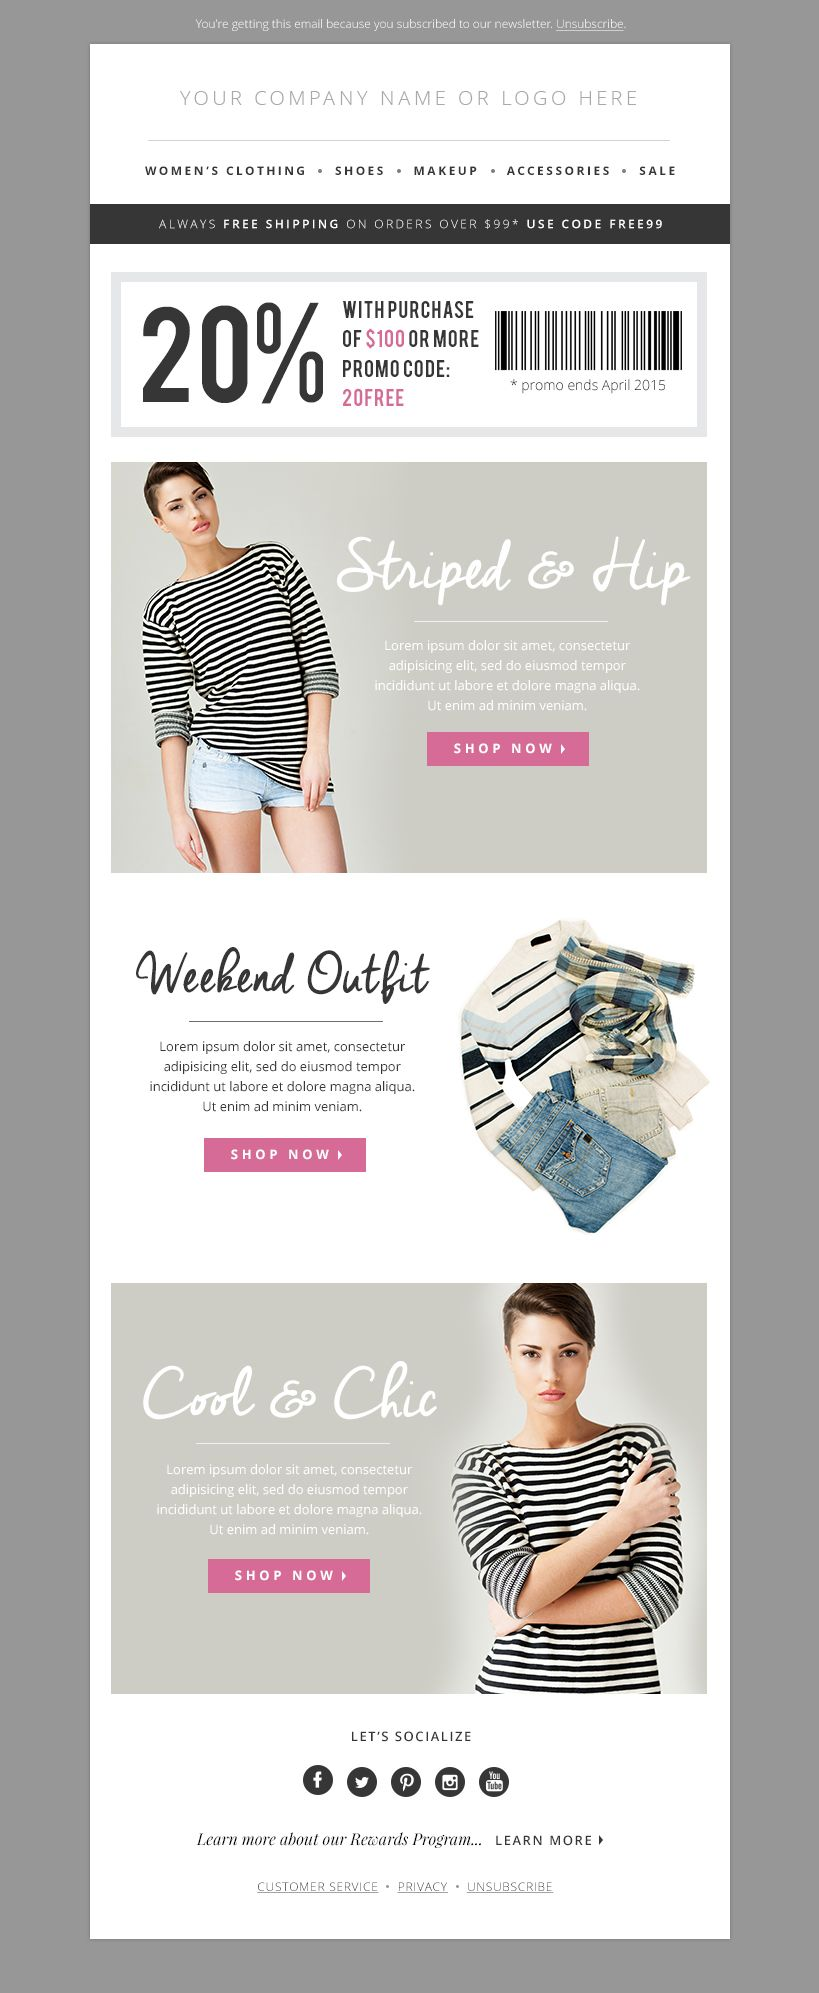 Fashion Email Template PSD Bundle | Template, Web banners and Email ...